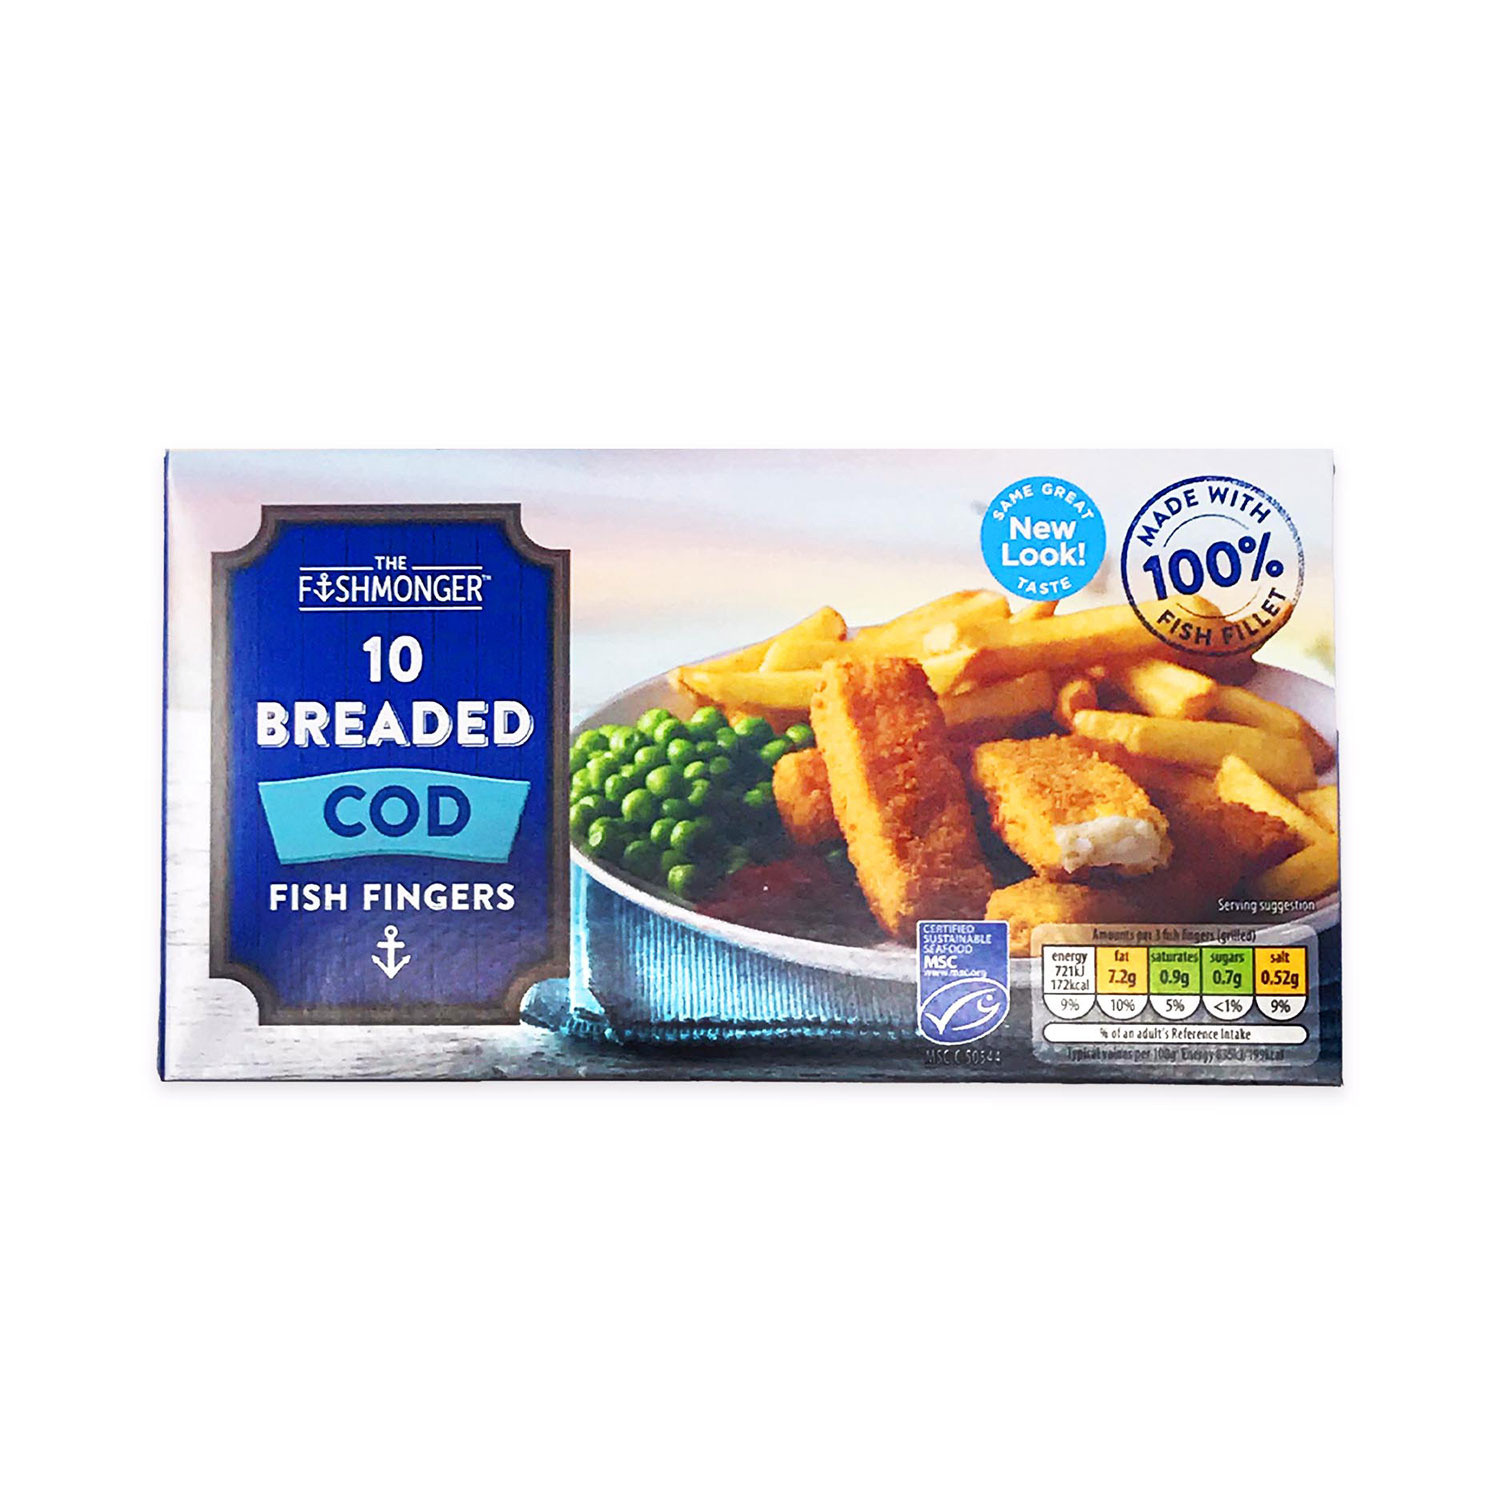 10 Breaded Cod Fish Fingers